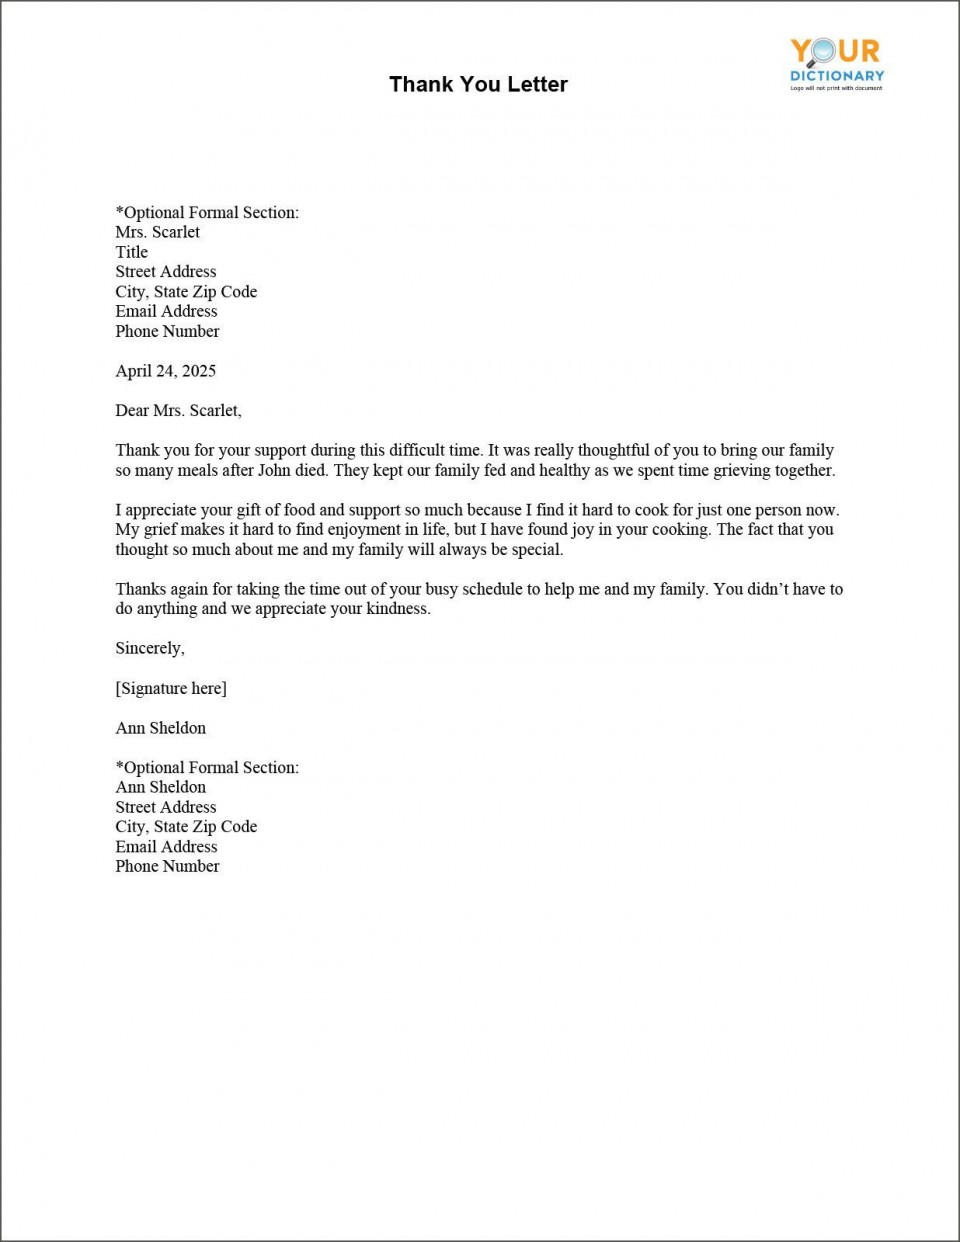 003 Shocking Thank You Letter Template Picture  Donation Word Printable Format Pdf960